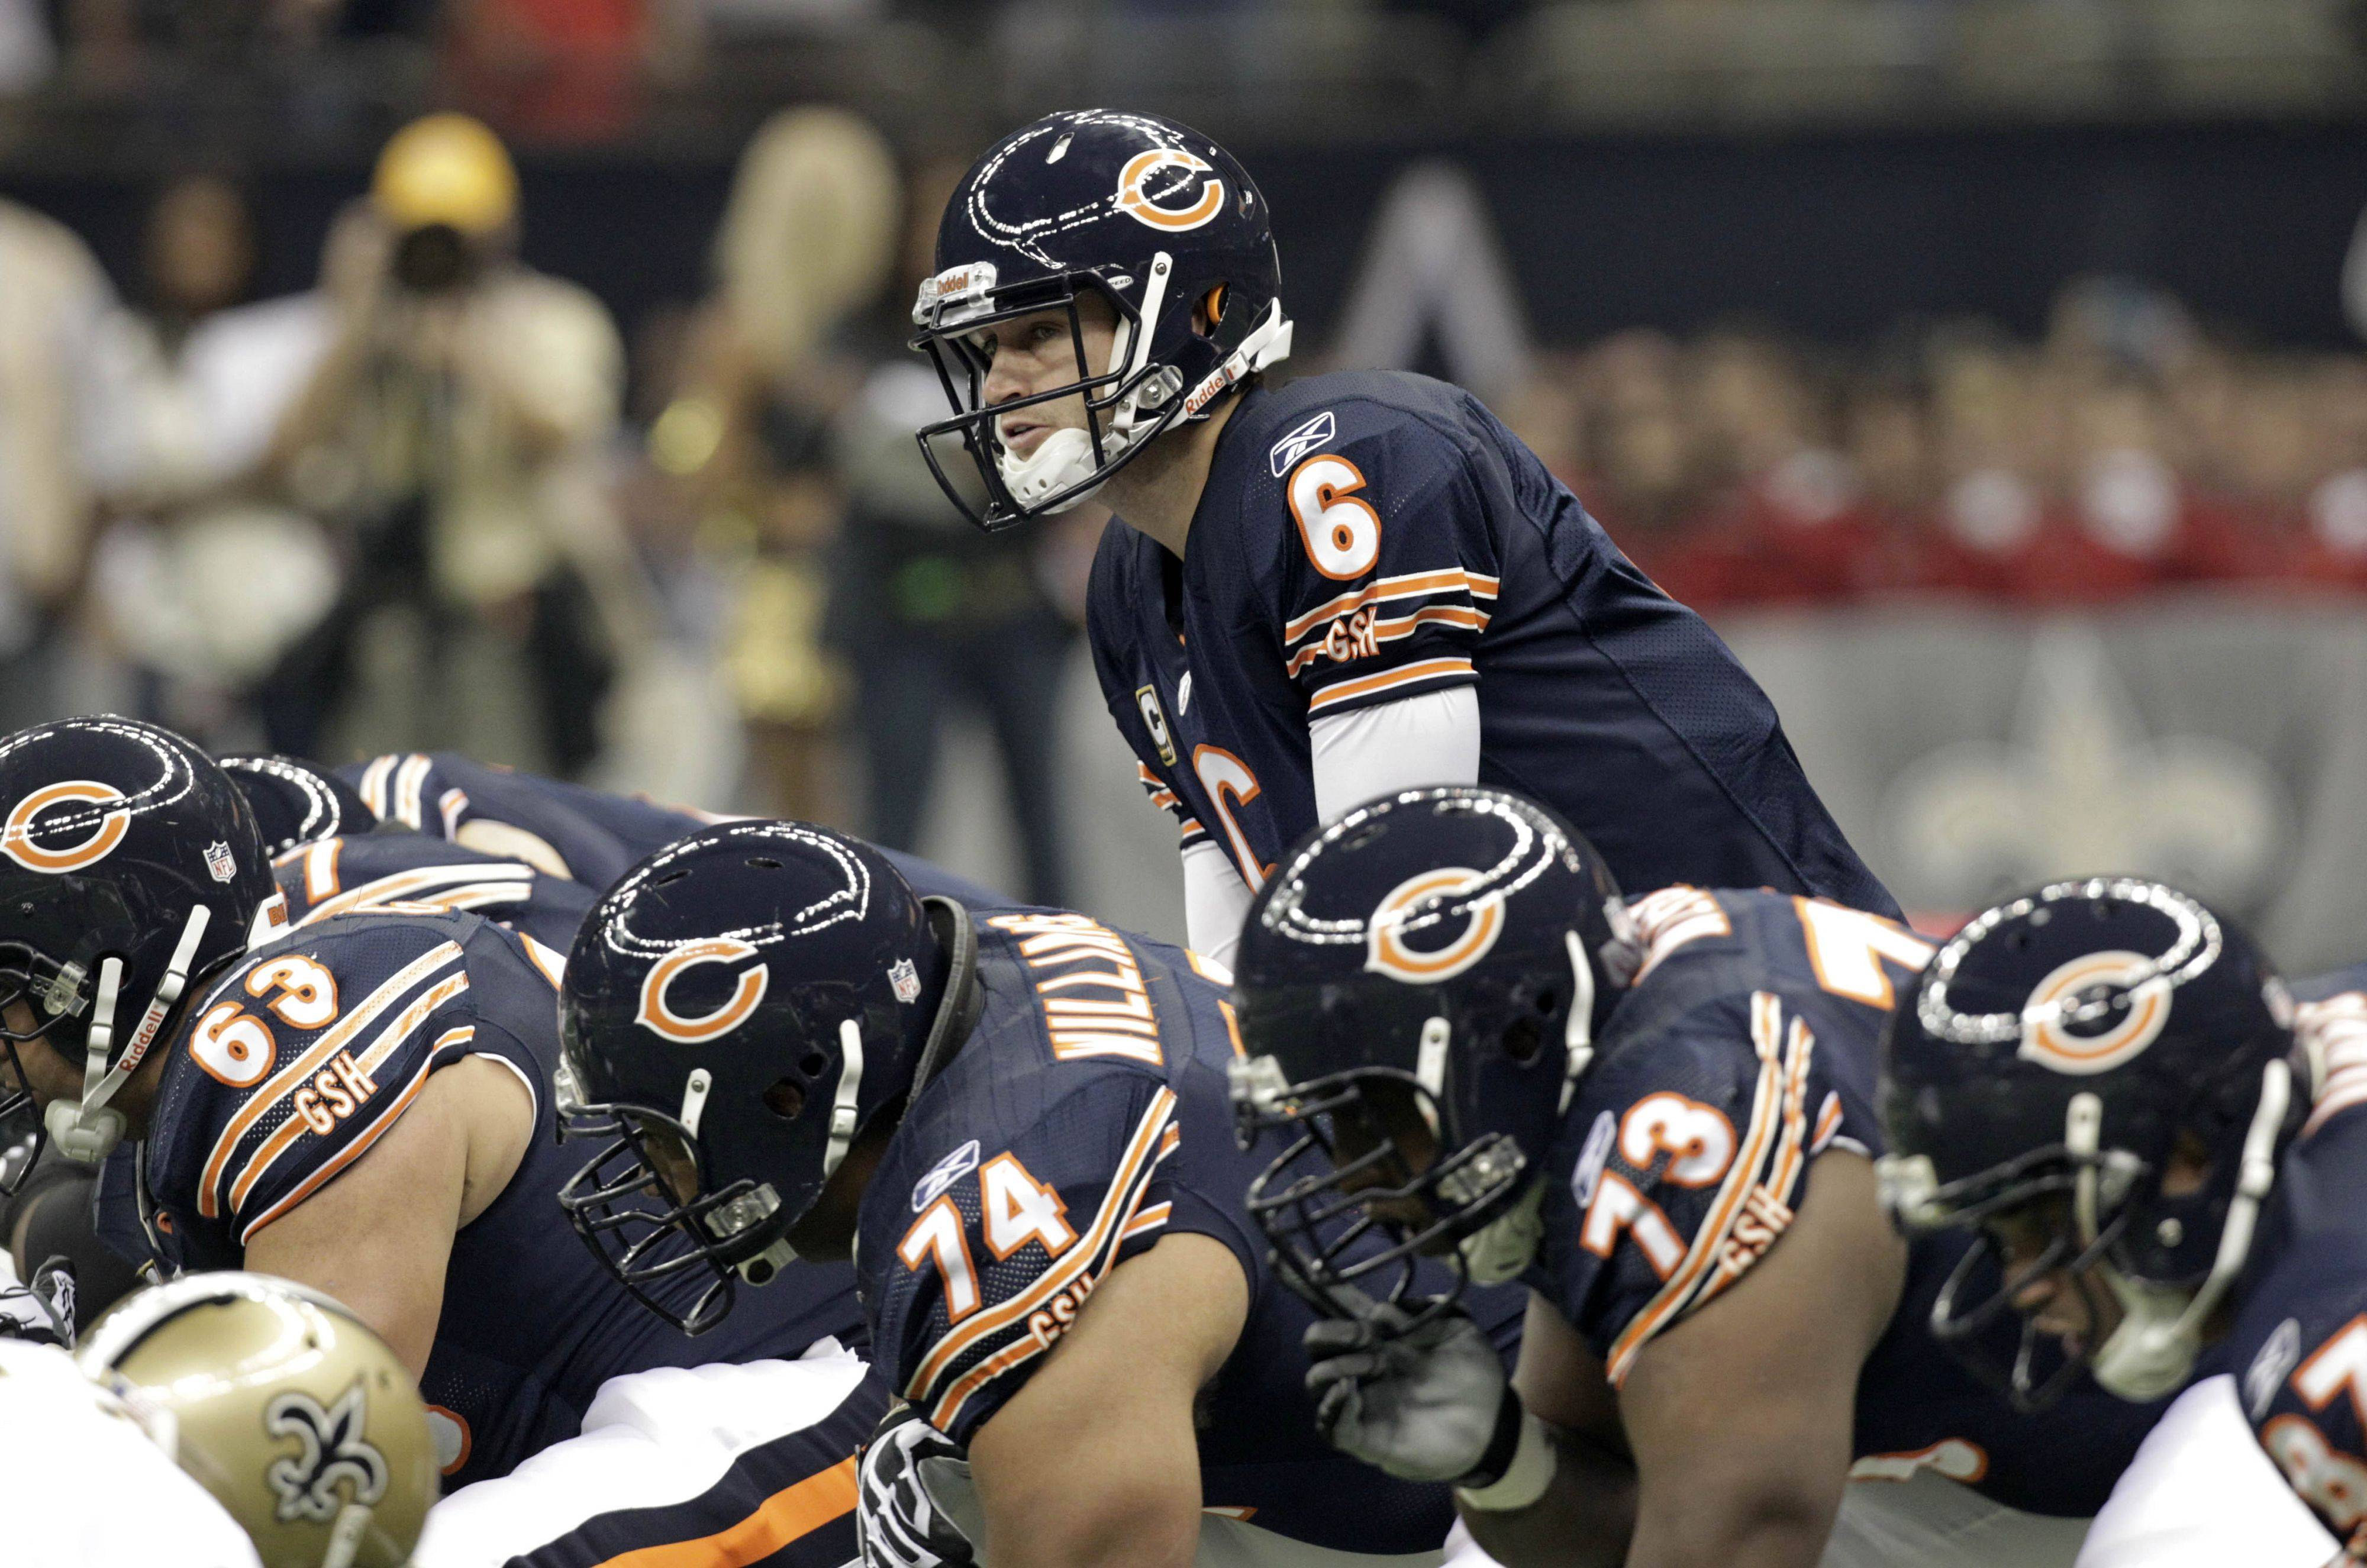 Bears quarterback Jay Cutler and his wide receivers need to do a better job of executing �hot� reads when the defense blitzes. Poor pass protection wasn�t the only problem Sunday against New Orleans as Bears wide receivers failed to break free from single-coverage matchups and Cutler failed to get them the ball.